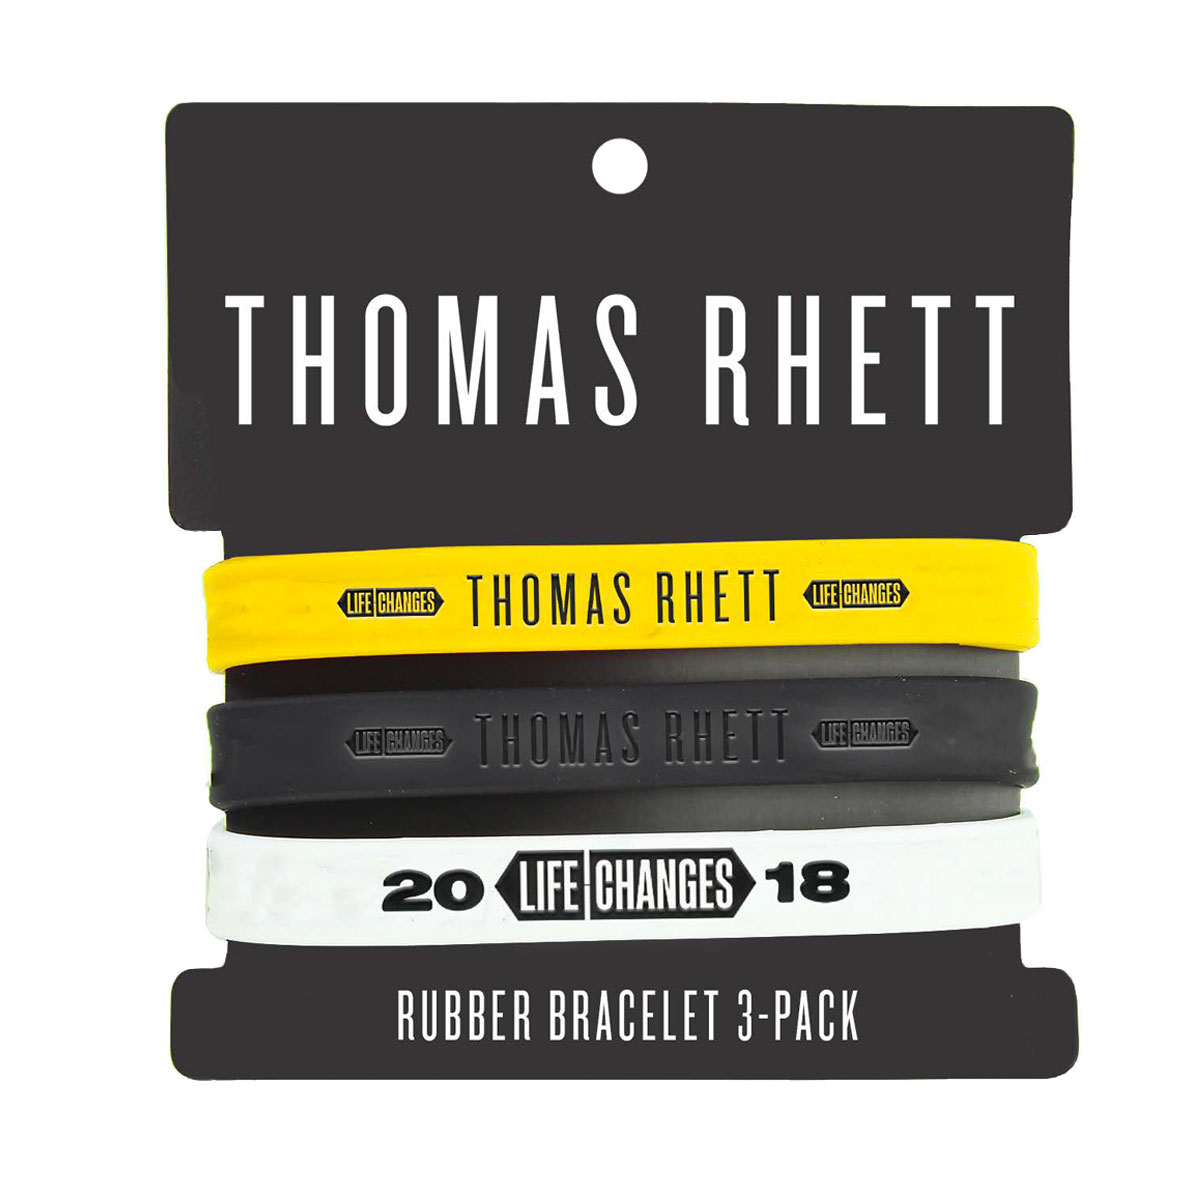 2018 Life Changes Tour Rubber Bracelet Set